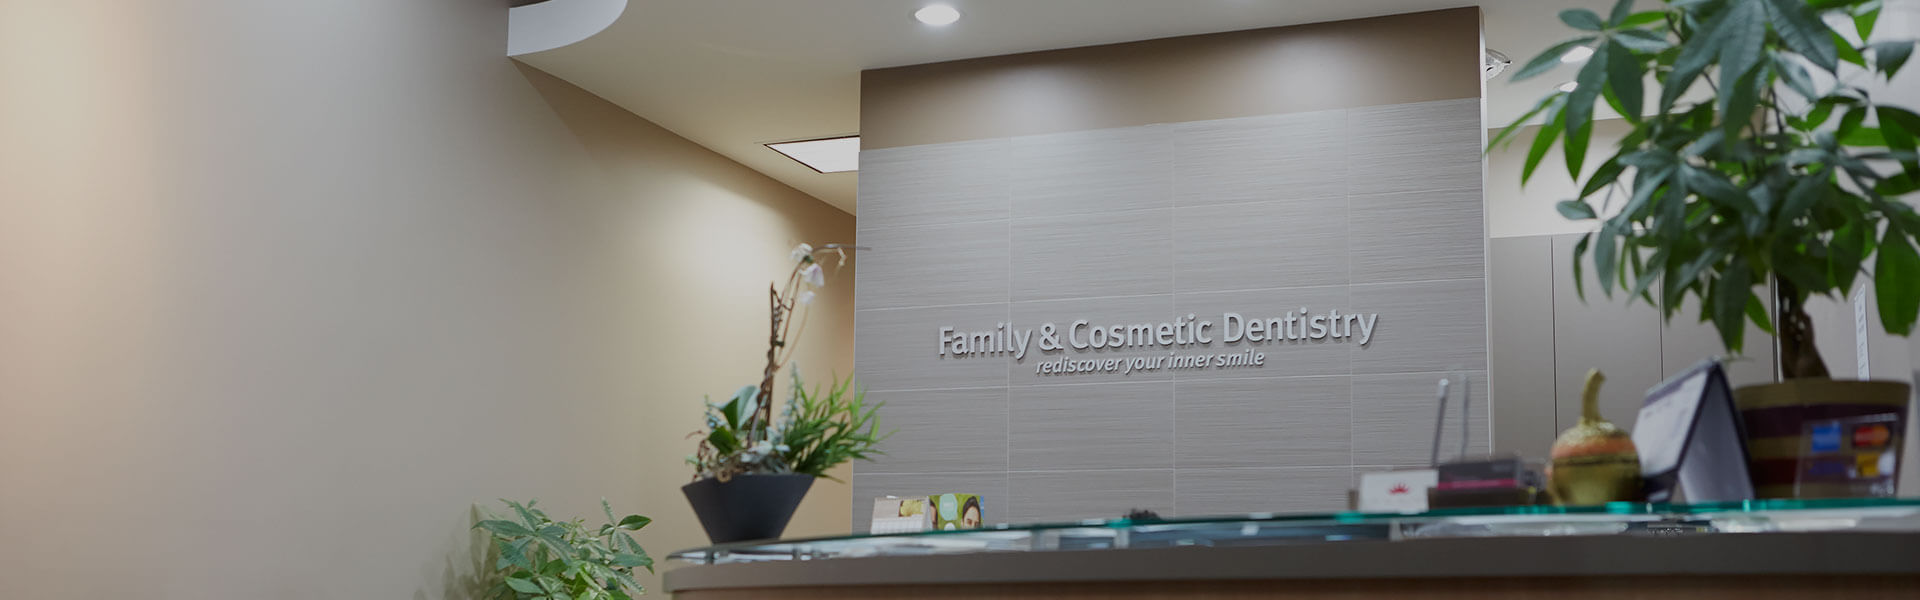 dr-choo-family-dentistry